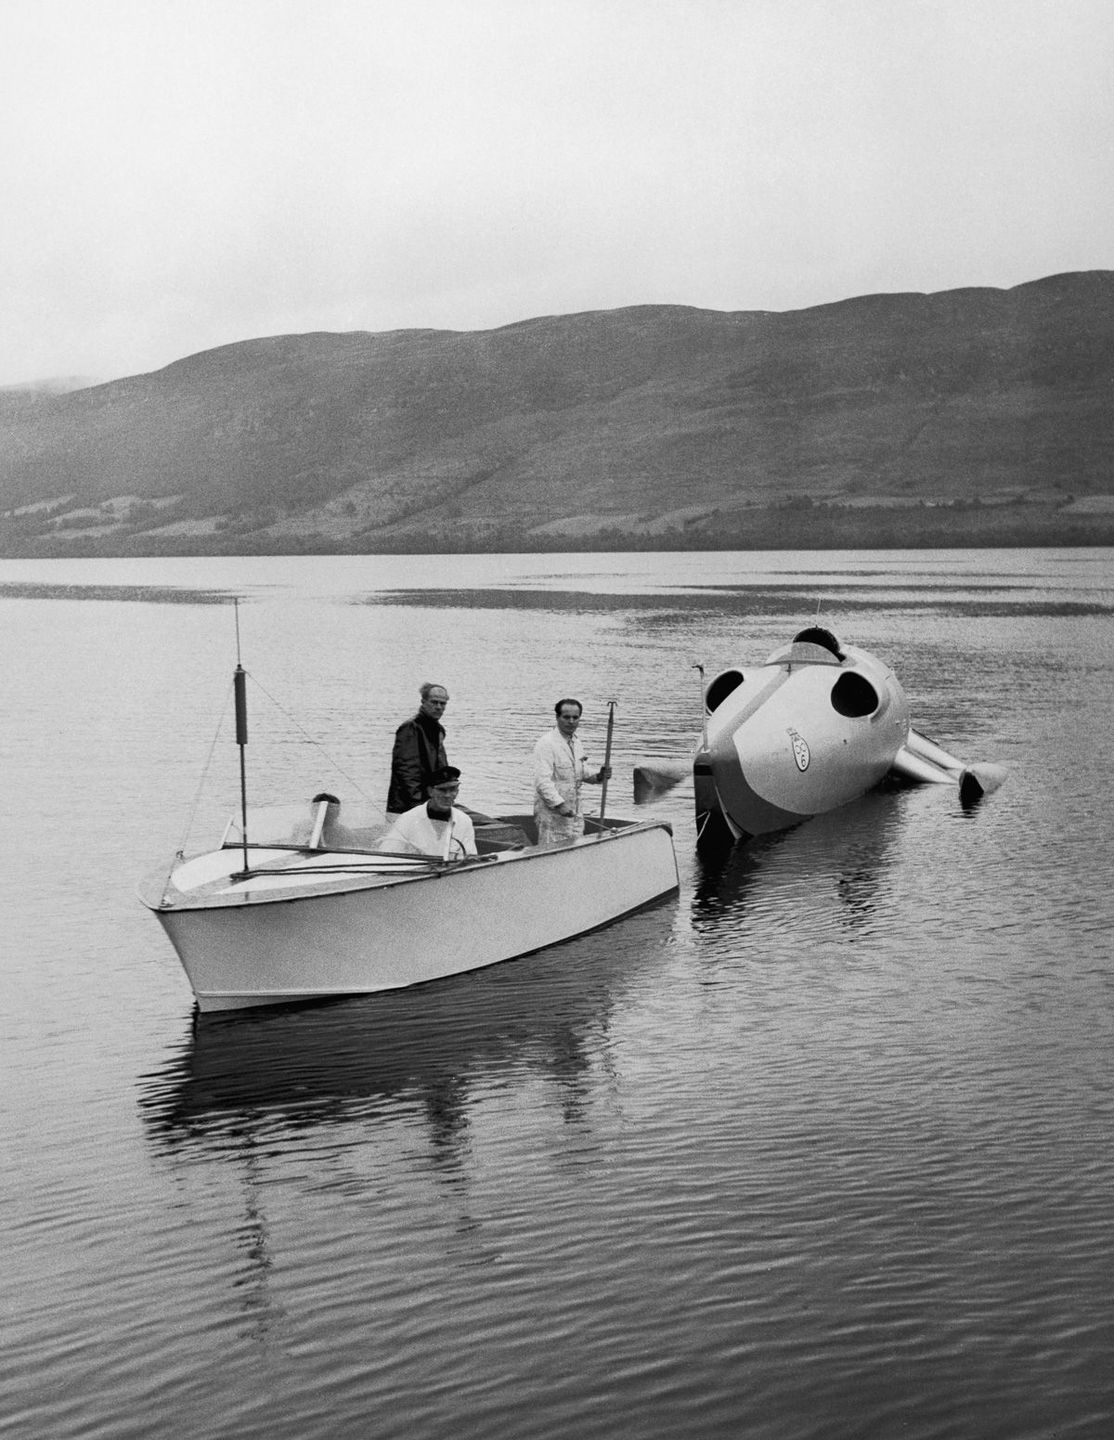 Crusader Loch Ness John Cobb speed 1952